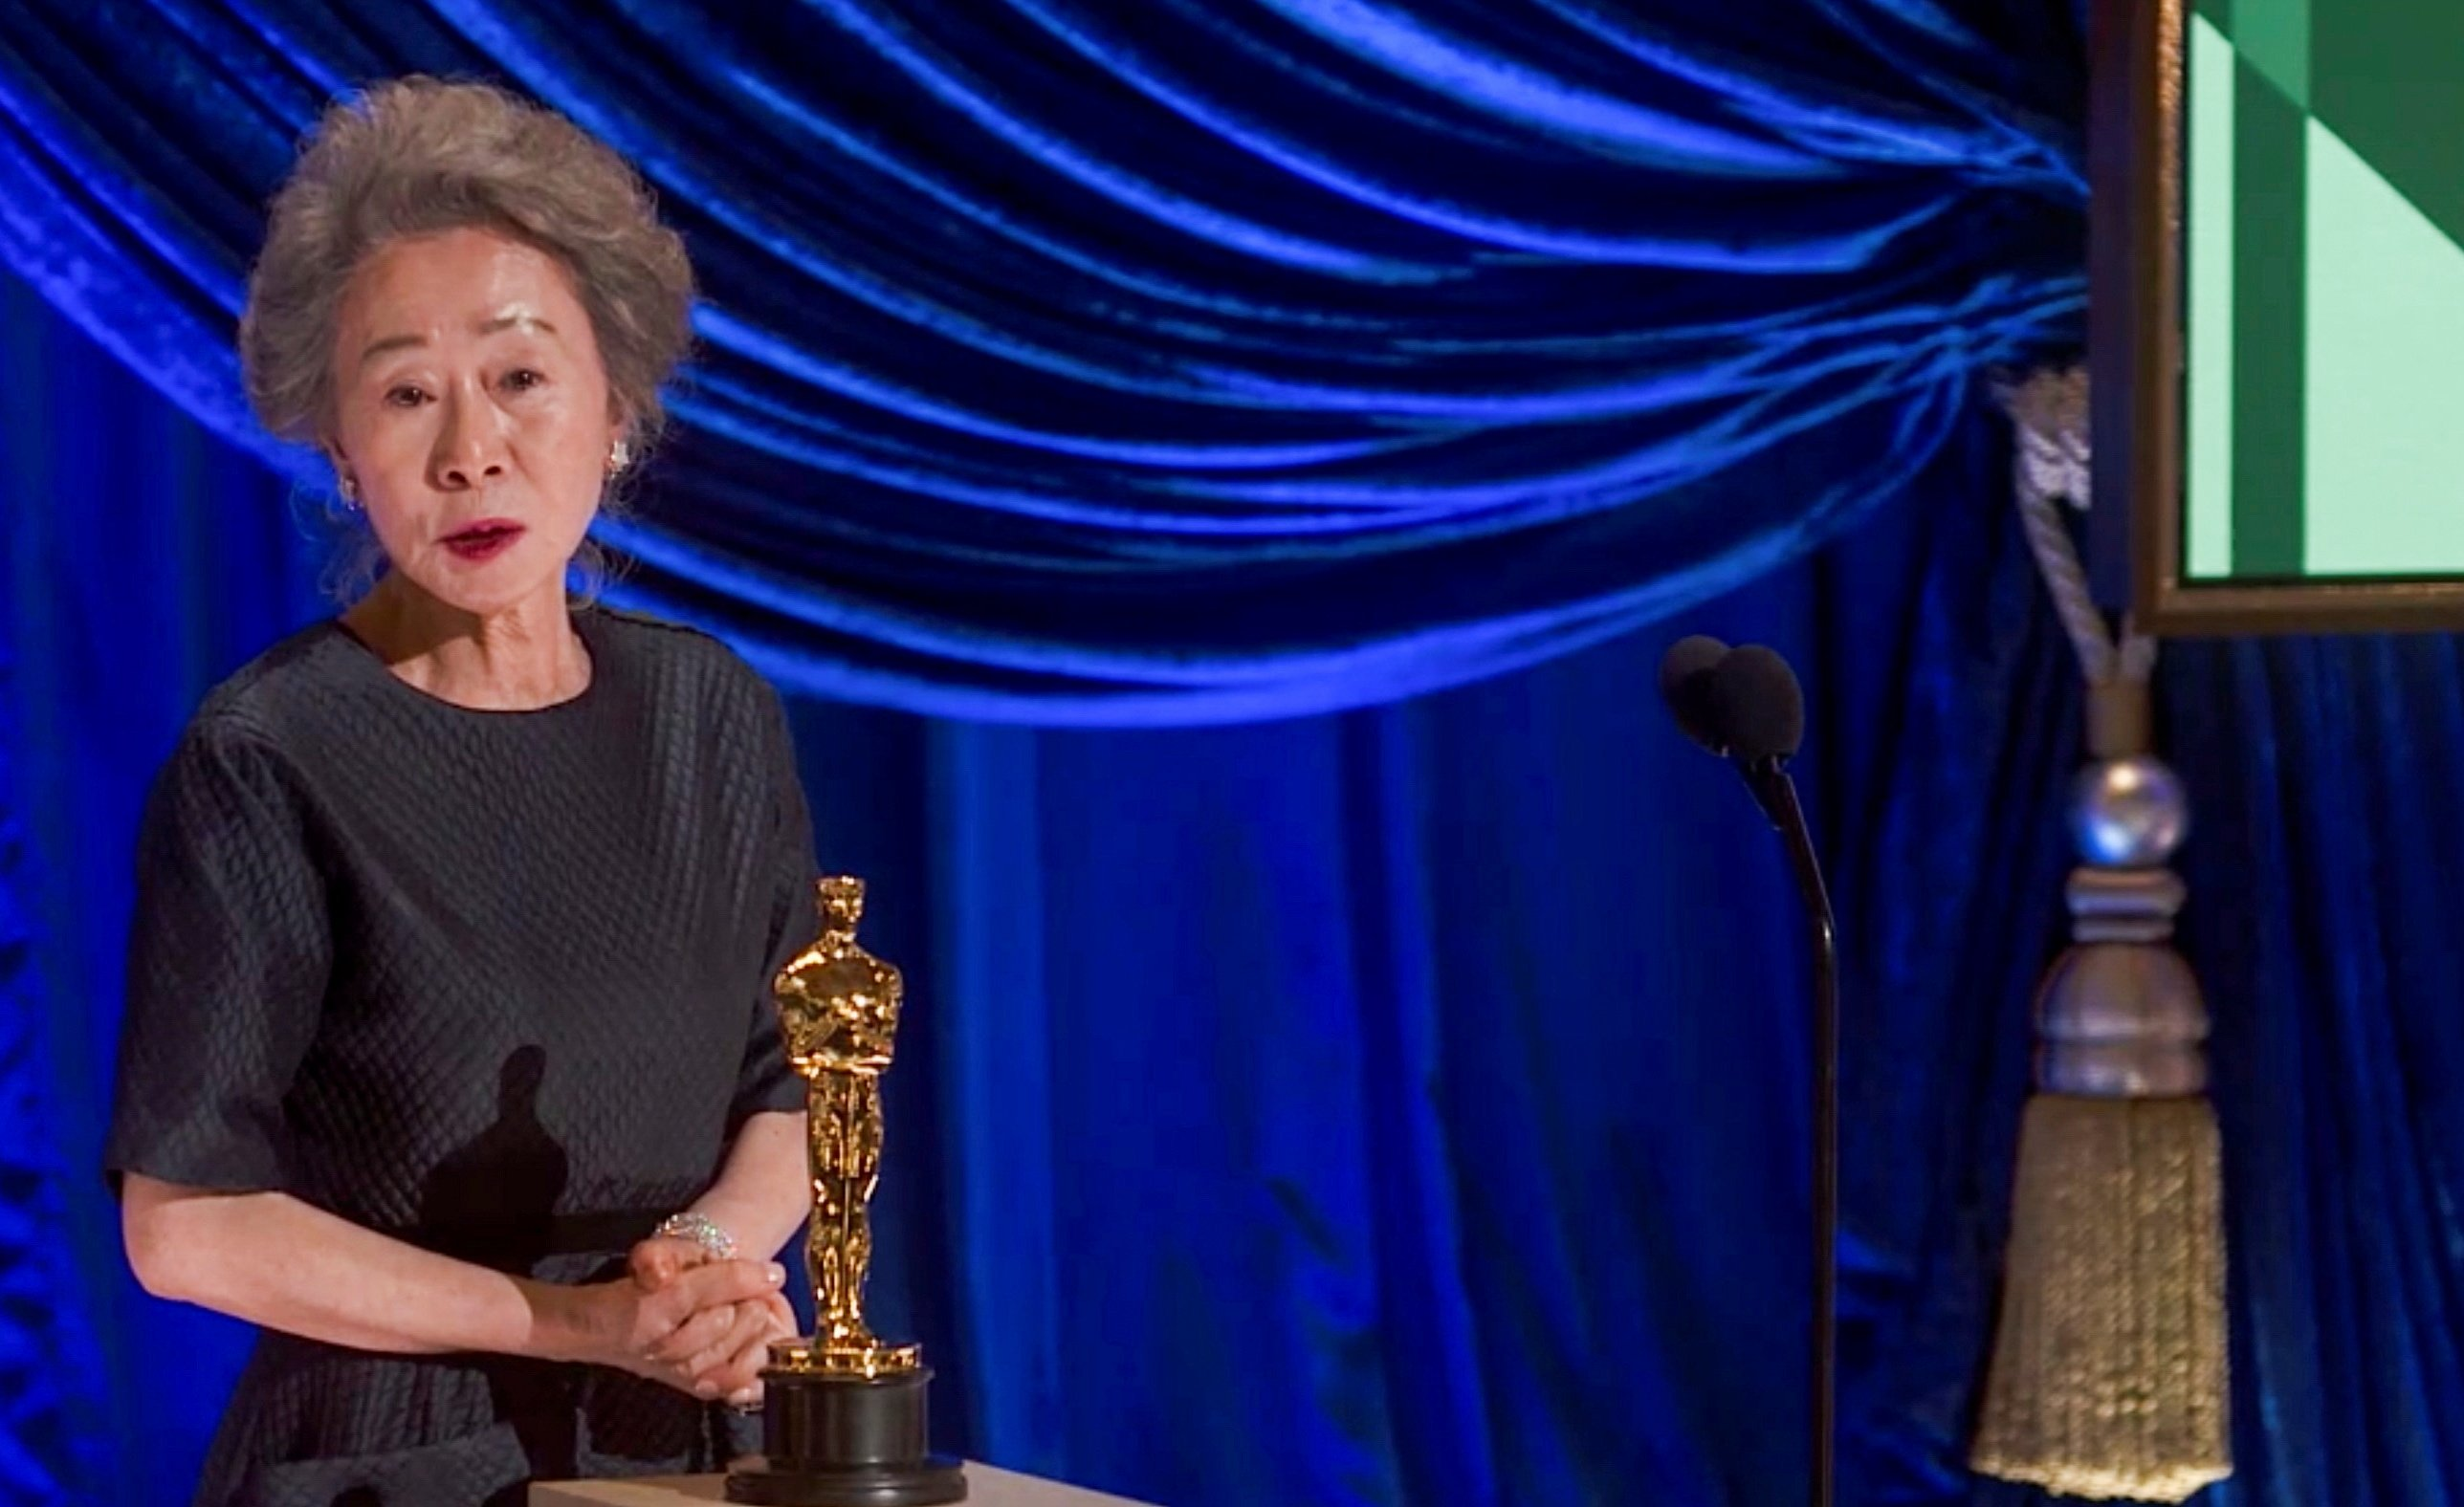 Yuh-Jung Youn accepts the Oscar for Actress in a Supporting Role during the live ABC Telecast of The 93rd Oscars in Los Angeles, California, U.S., April 25, 2021. (REUTERS Photo)